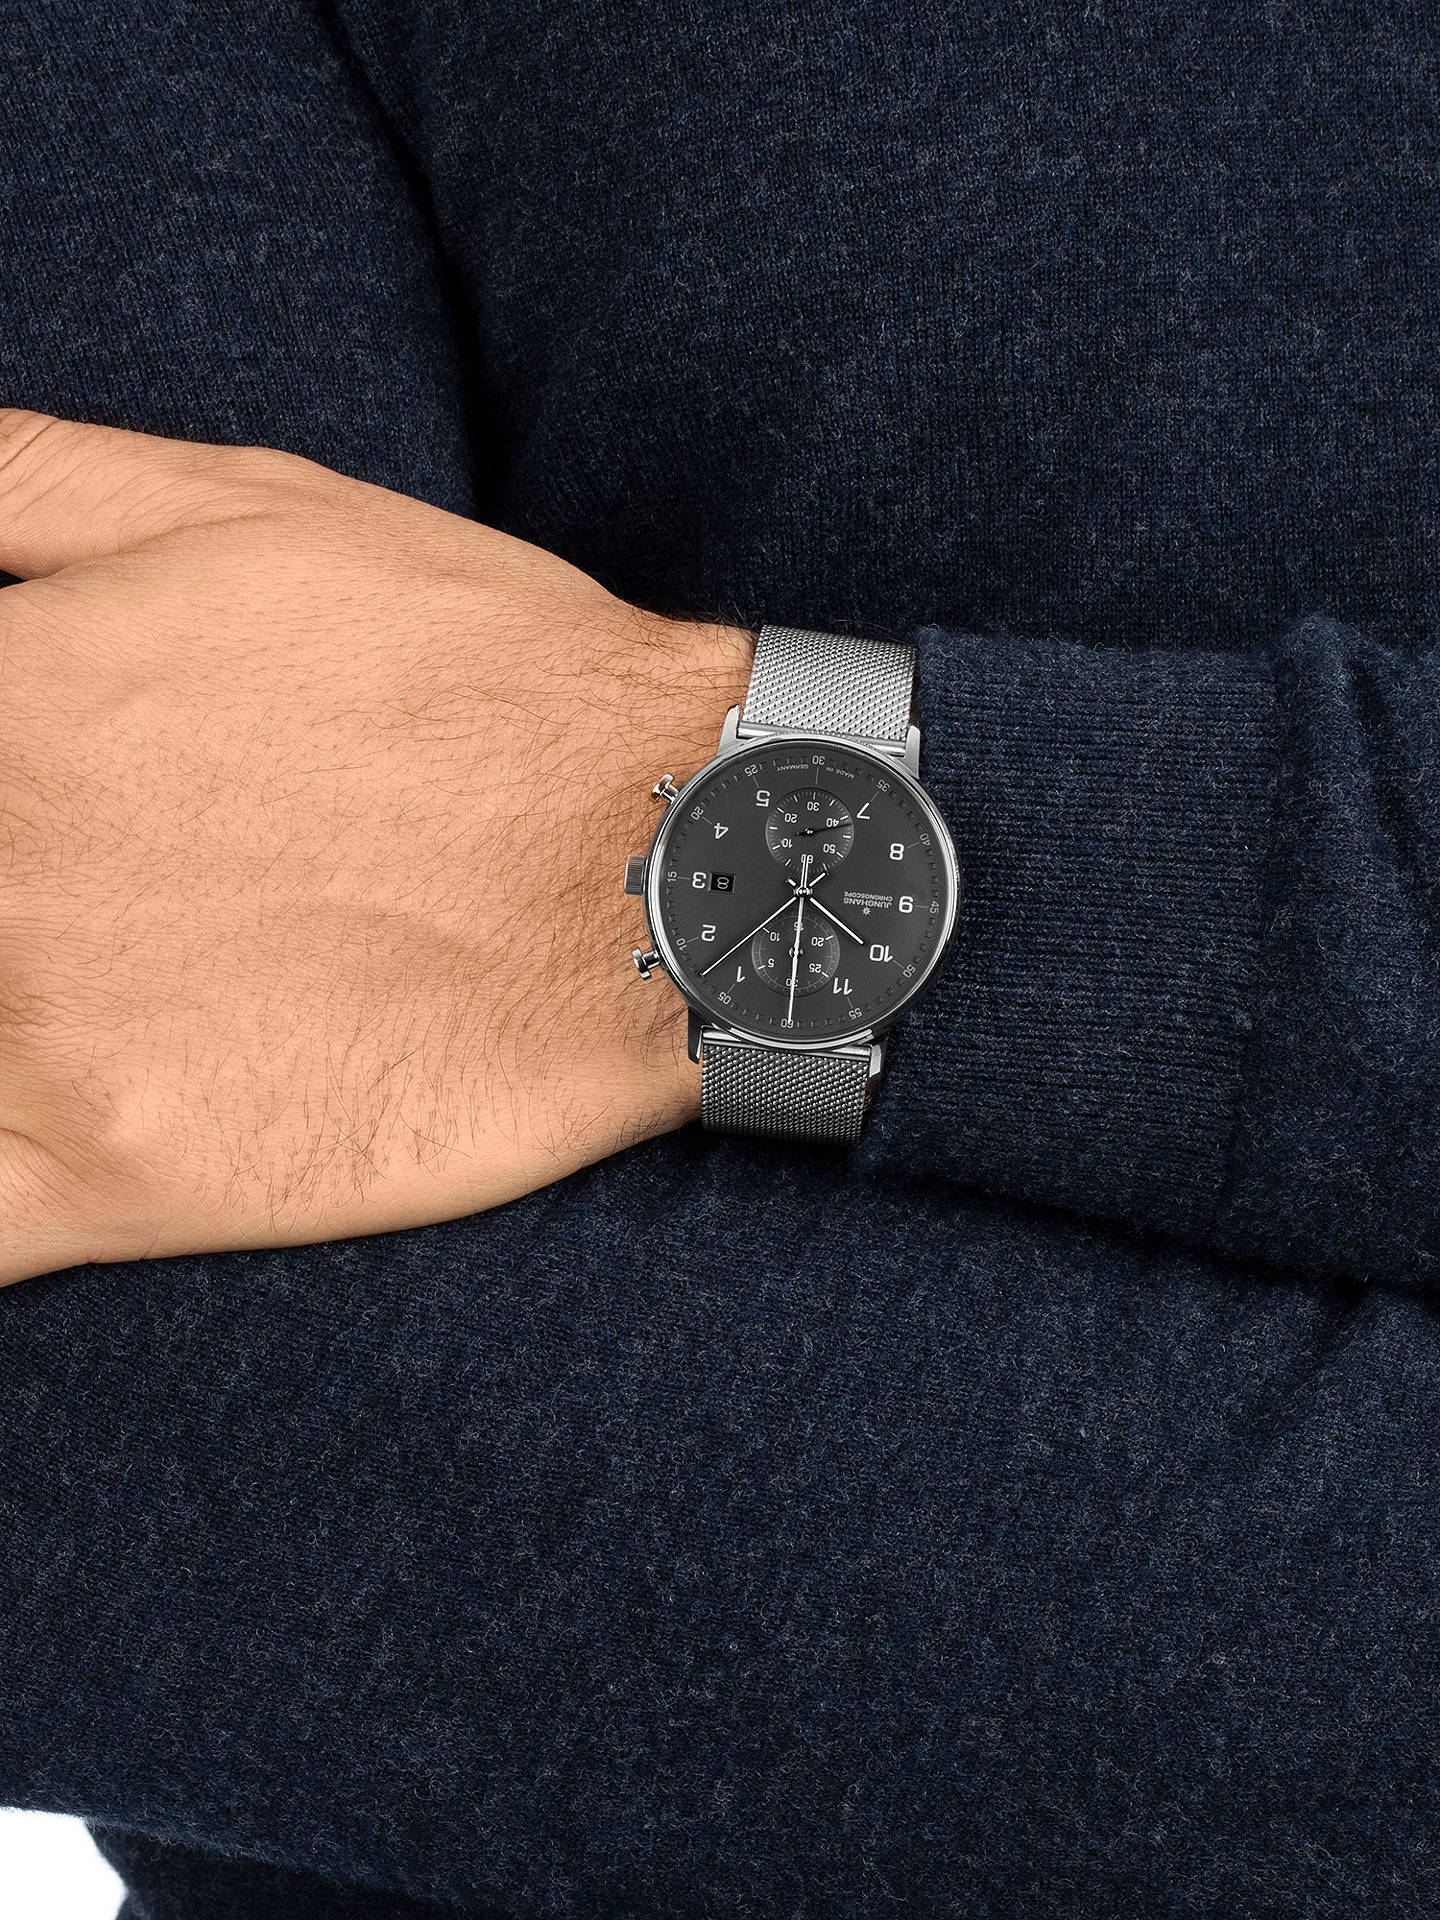 BuyJunghans 041/4877.44 Unisex Form Chronoscope Bracelet Strap Watch, Silver/Grey Online at johnlewis.com